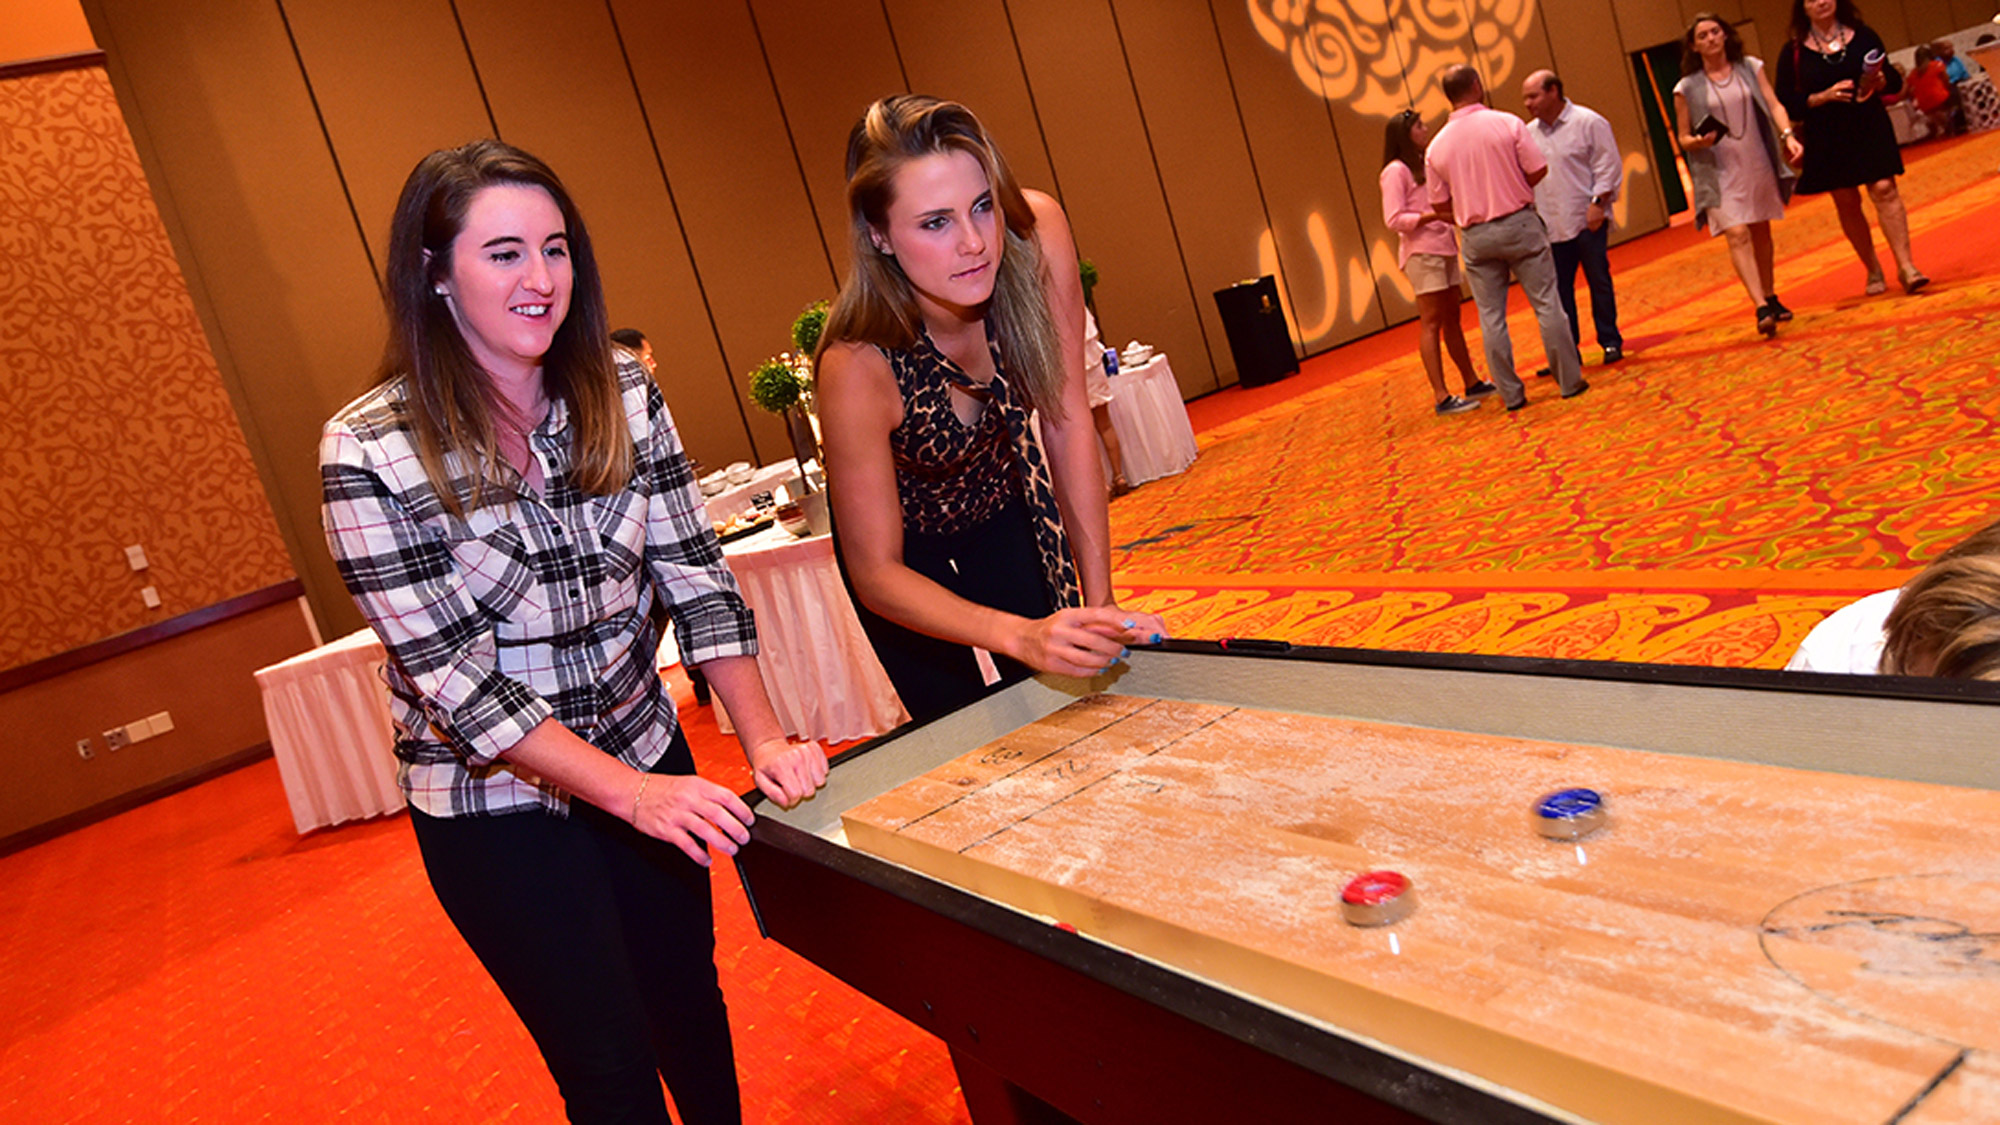 Amelia Lewis and Lexi Thompson Play Shuffle Board